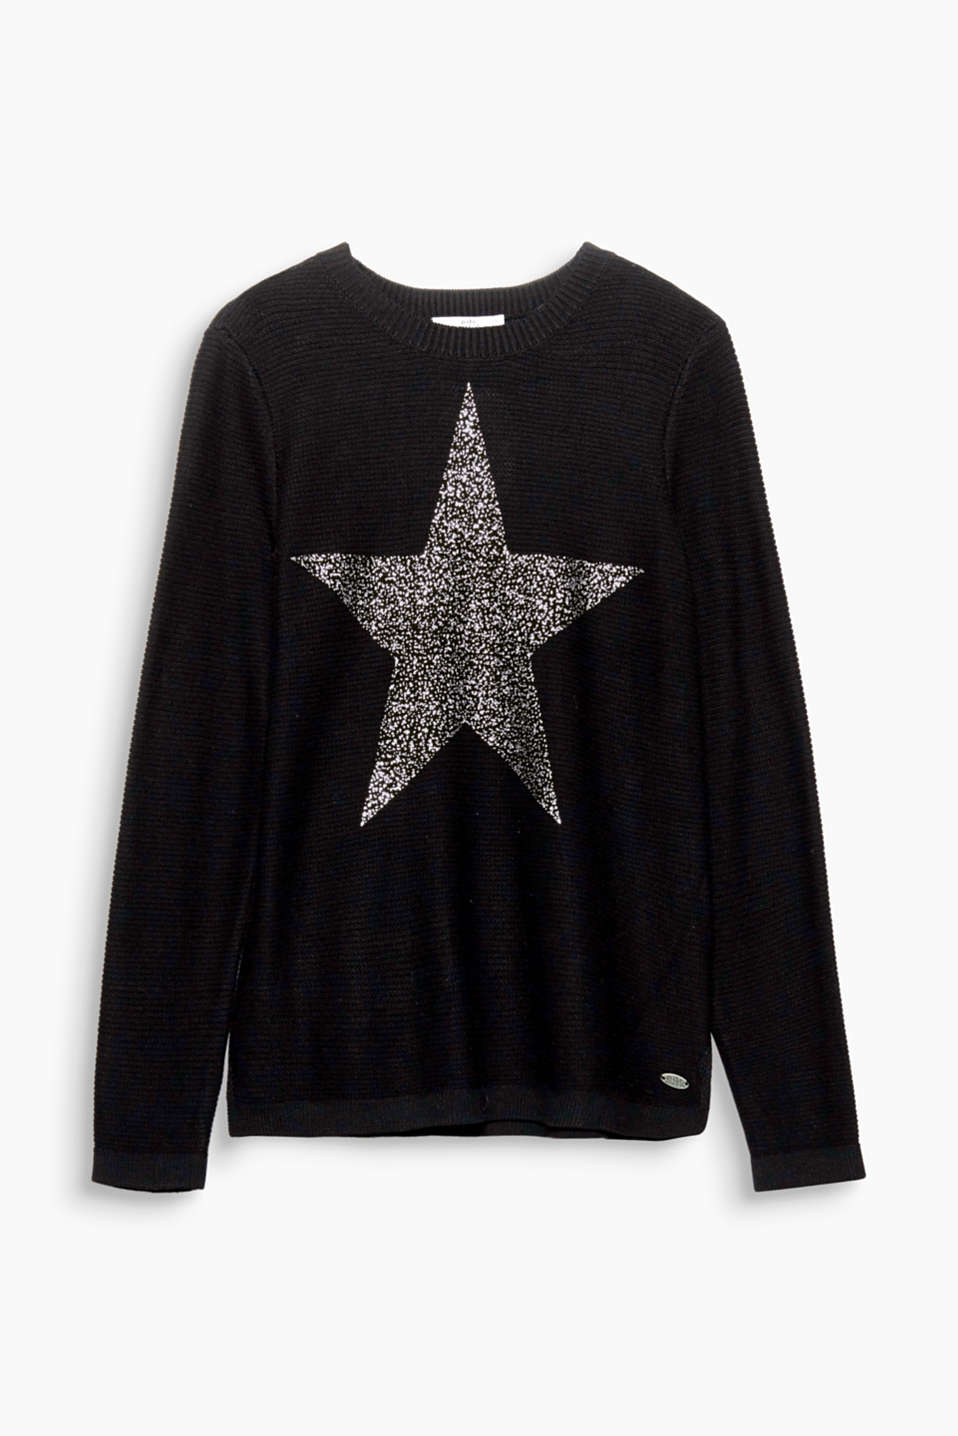 Twinkle, twinkle little star! This soft jumper shines thanks to its metallic, shimmering star print on the front.